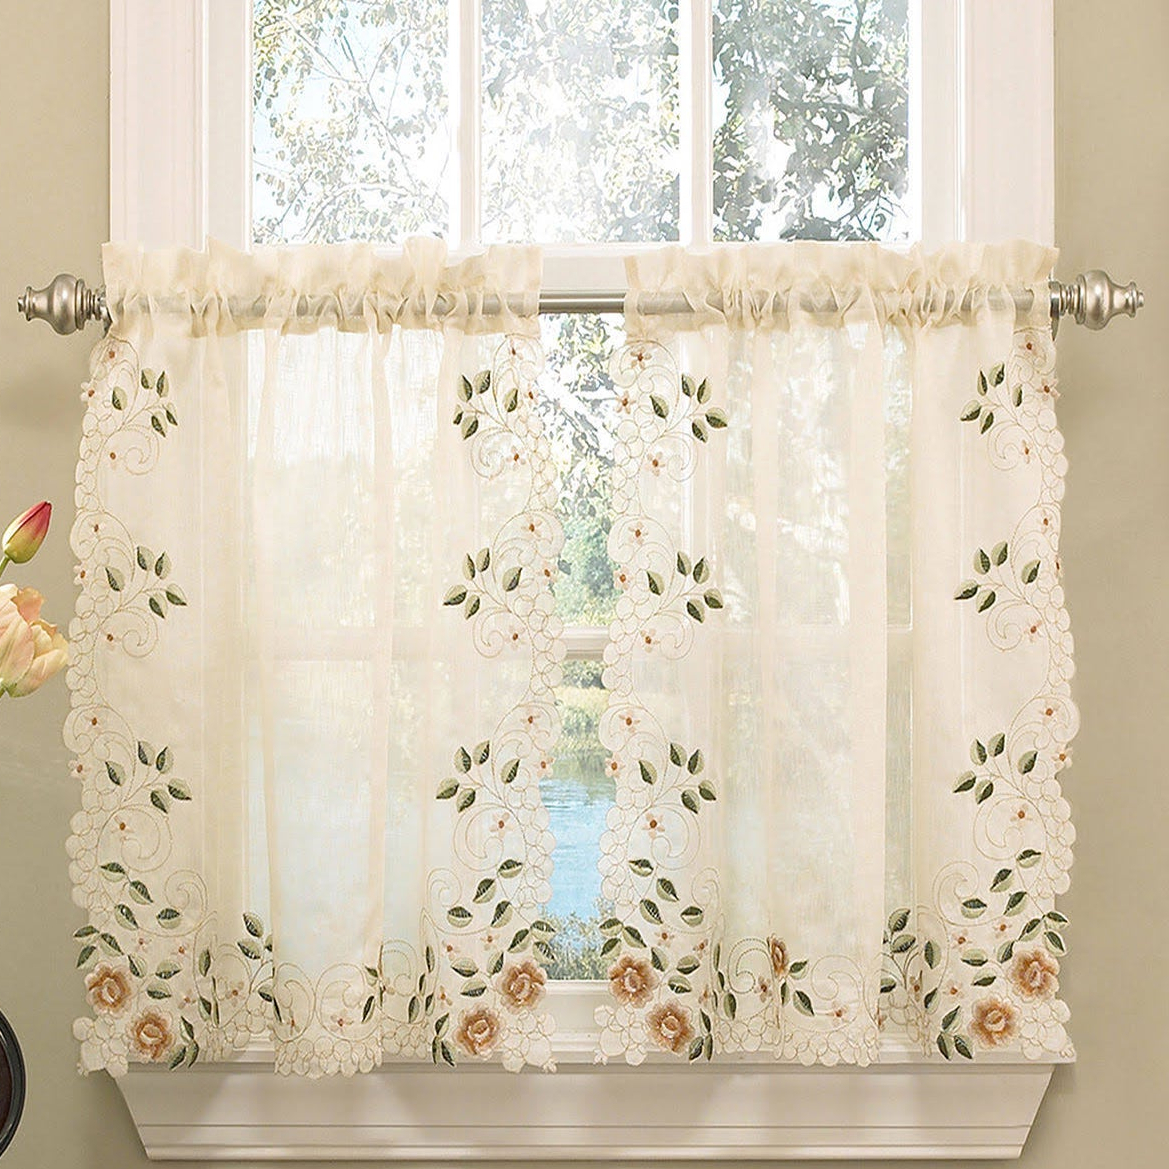 Recent Floral Embroidered Sheer Kitchen Curtain Tiers, Swags And Valances In Old World Floral Embroidered Sheer Kitchen Curtain Parts Tiers, Swags And Valances (View 9 of 20)